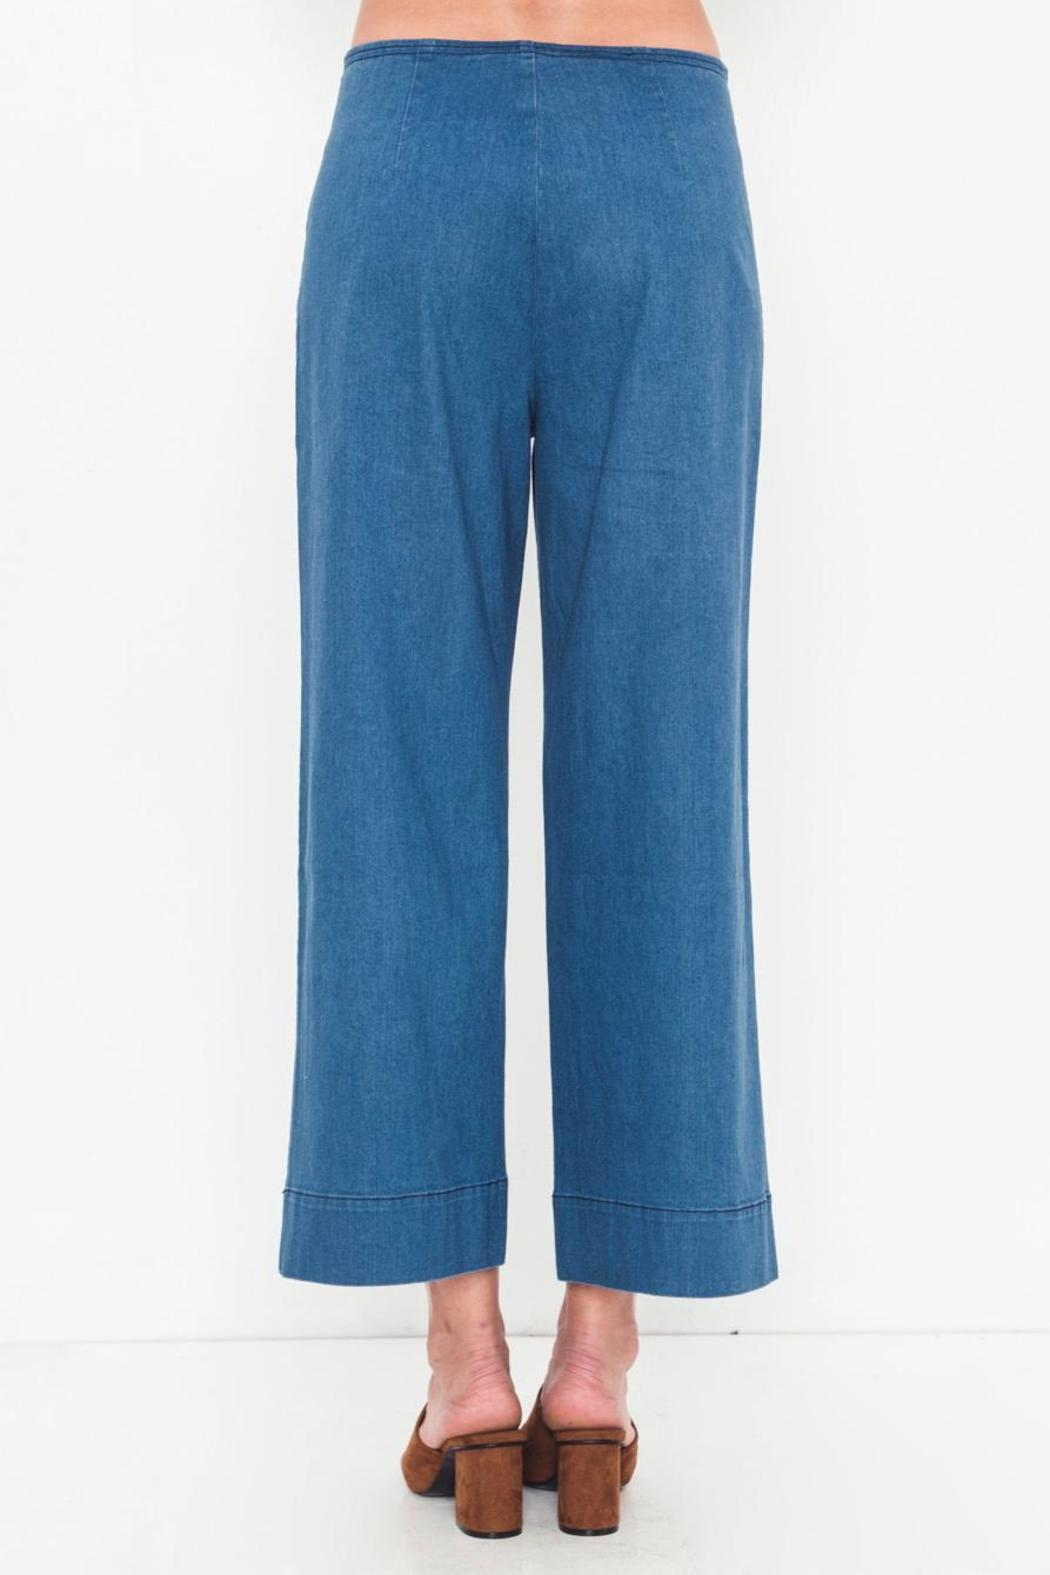 Movint Denim Side Button Pants - Side Cropped Image